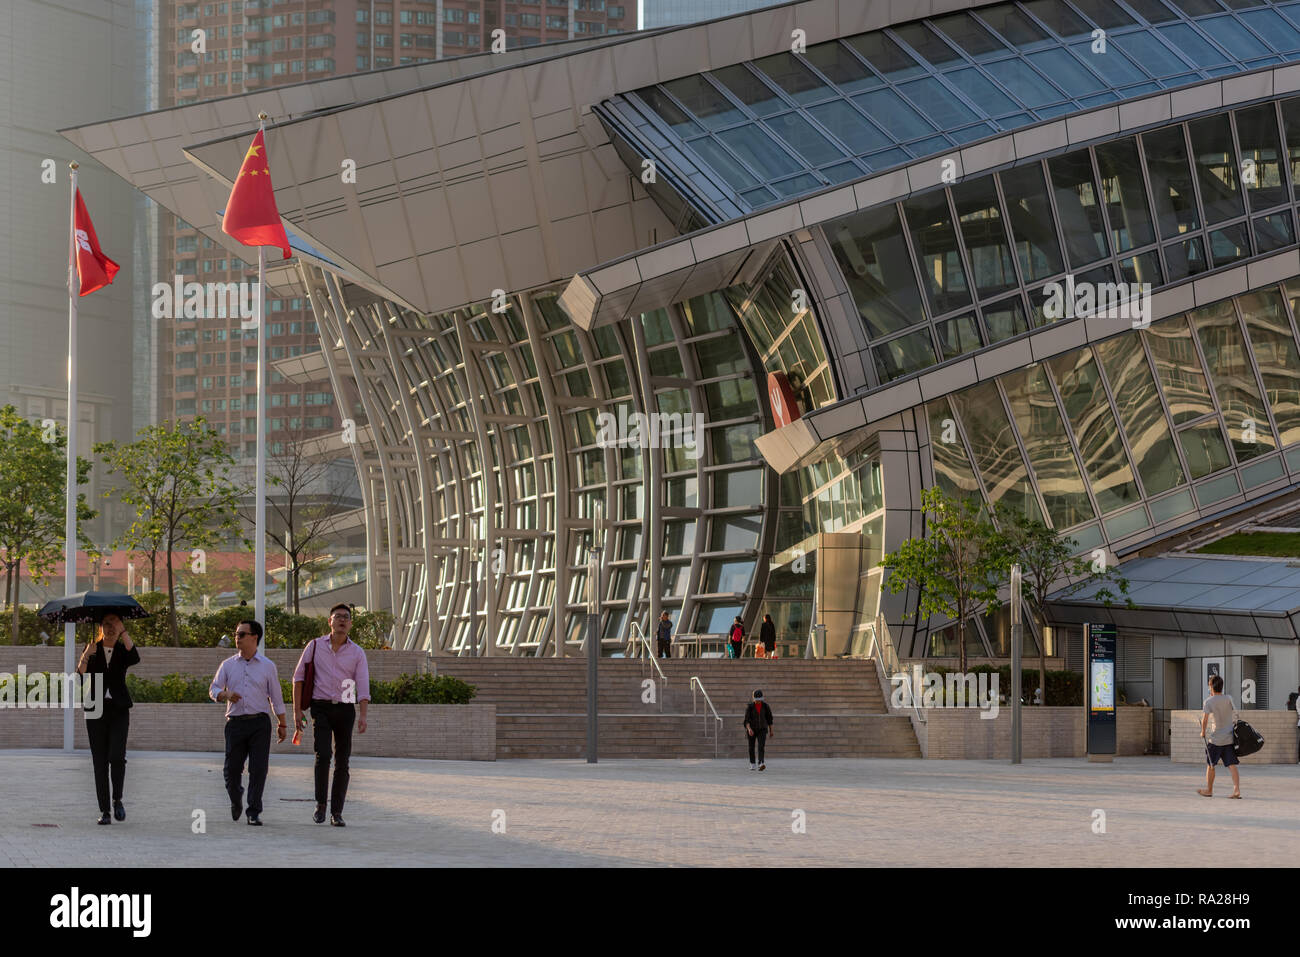 Hong Kong West Kowloon station, the gateway to Hong Kong's high speed rail links with Mainland China, in late afternoon November sunshine. - Stock Image